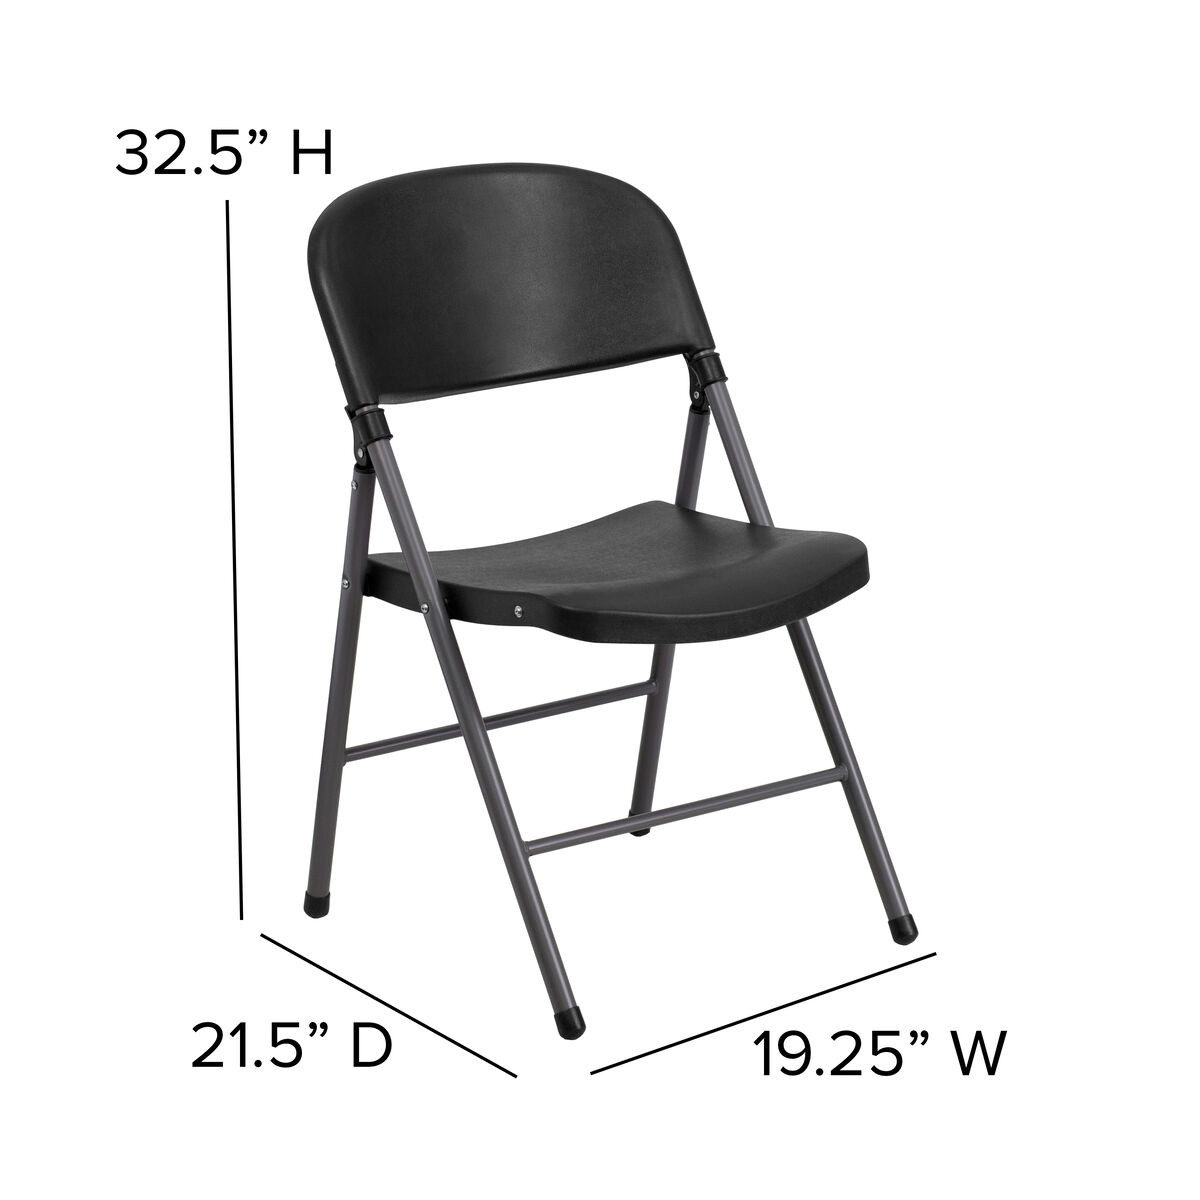 Astonishing Hercules Series 330 Lb Capacity Black Plastic Folding Chair With Charcoal Frame Uwap Interior Chair Design Uwaporg